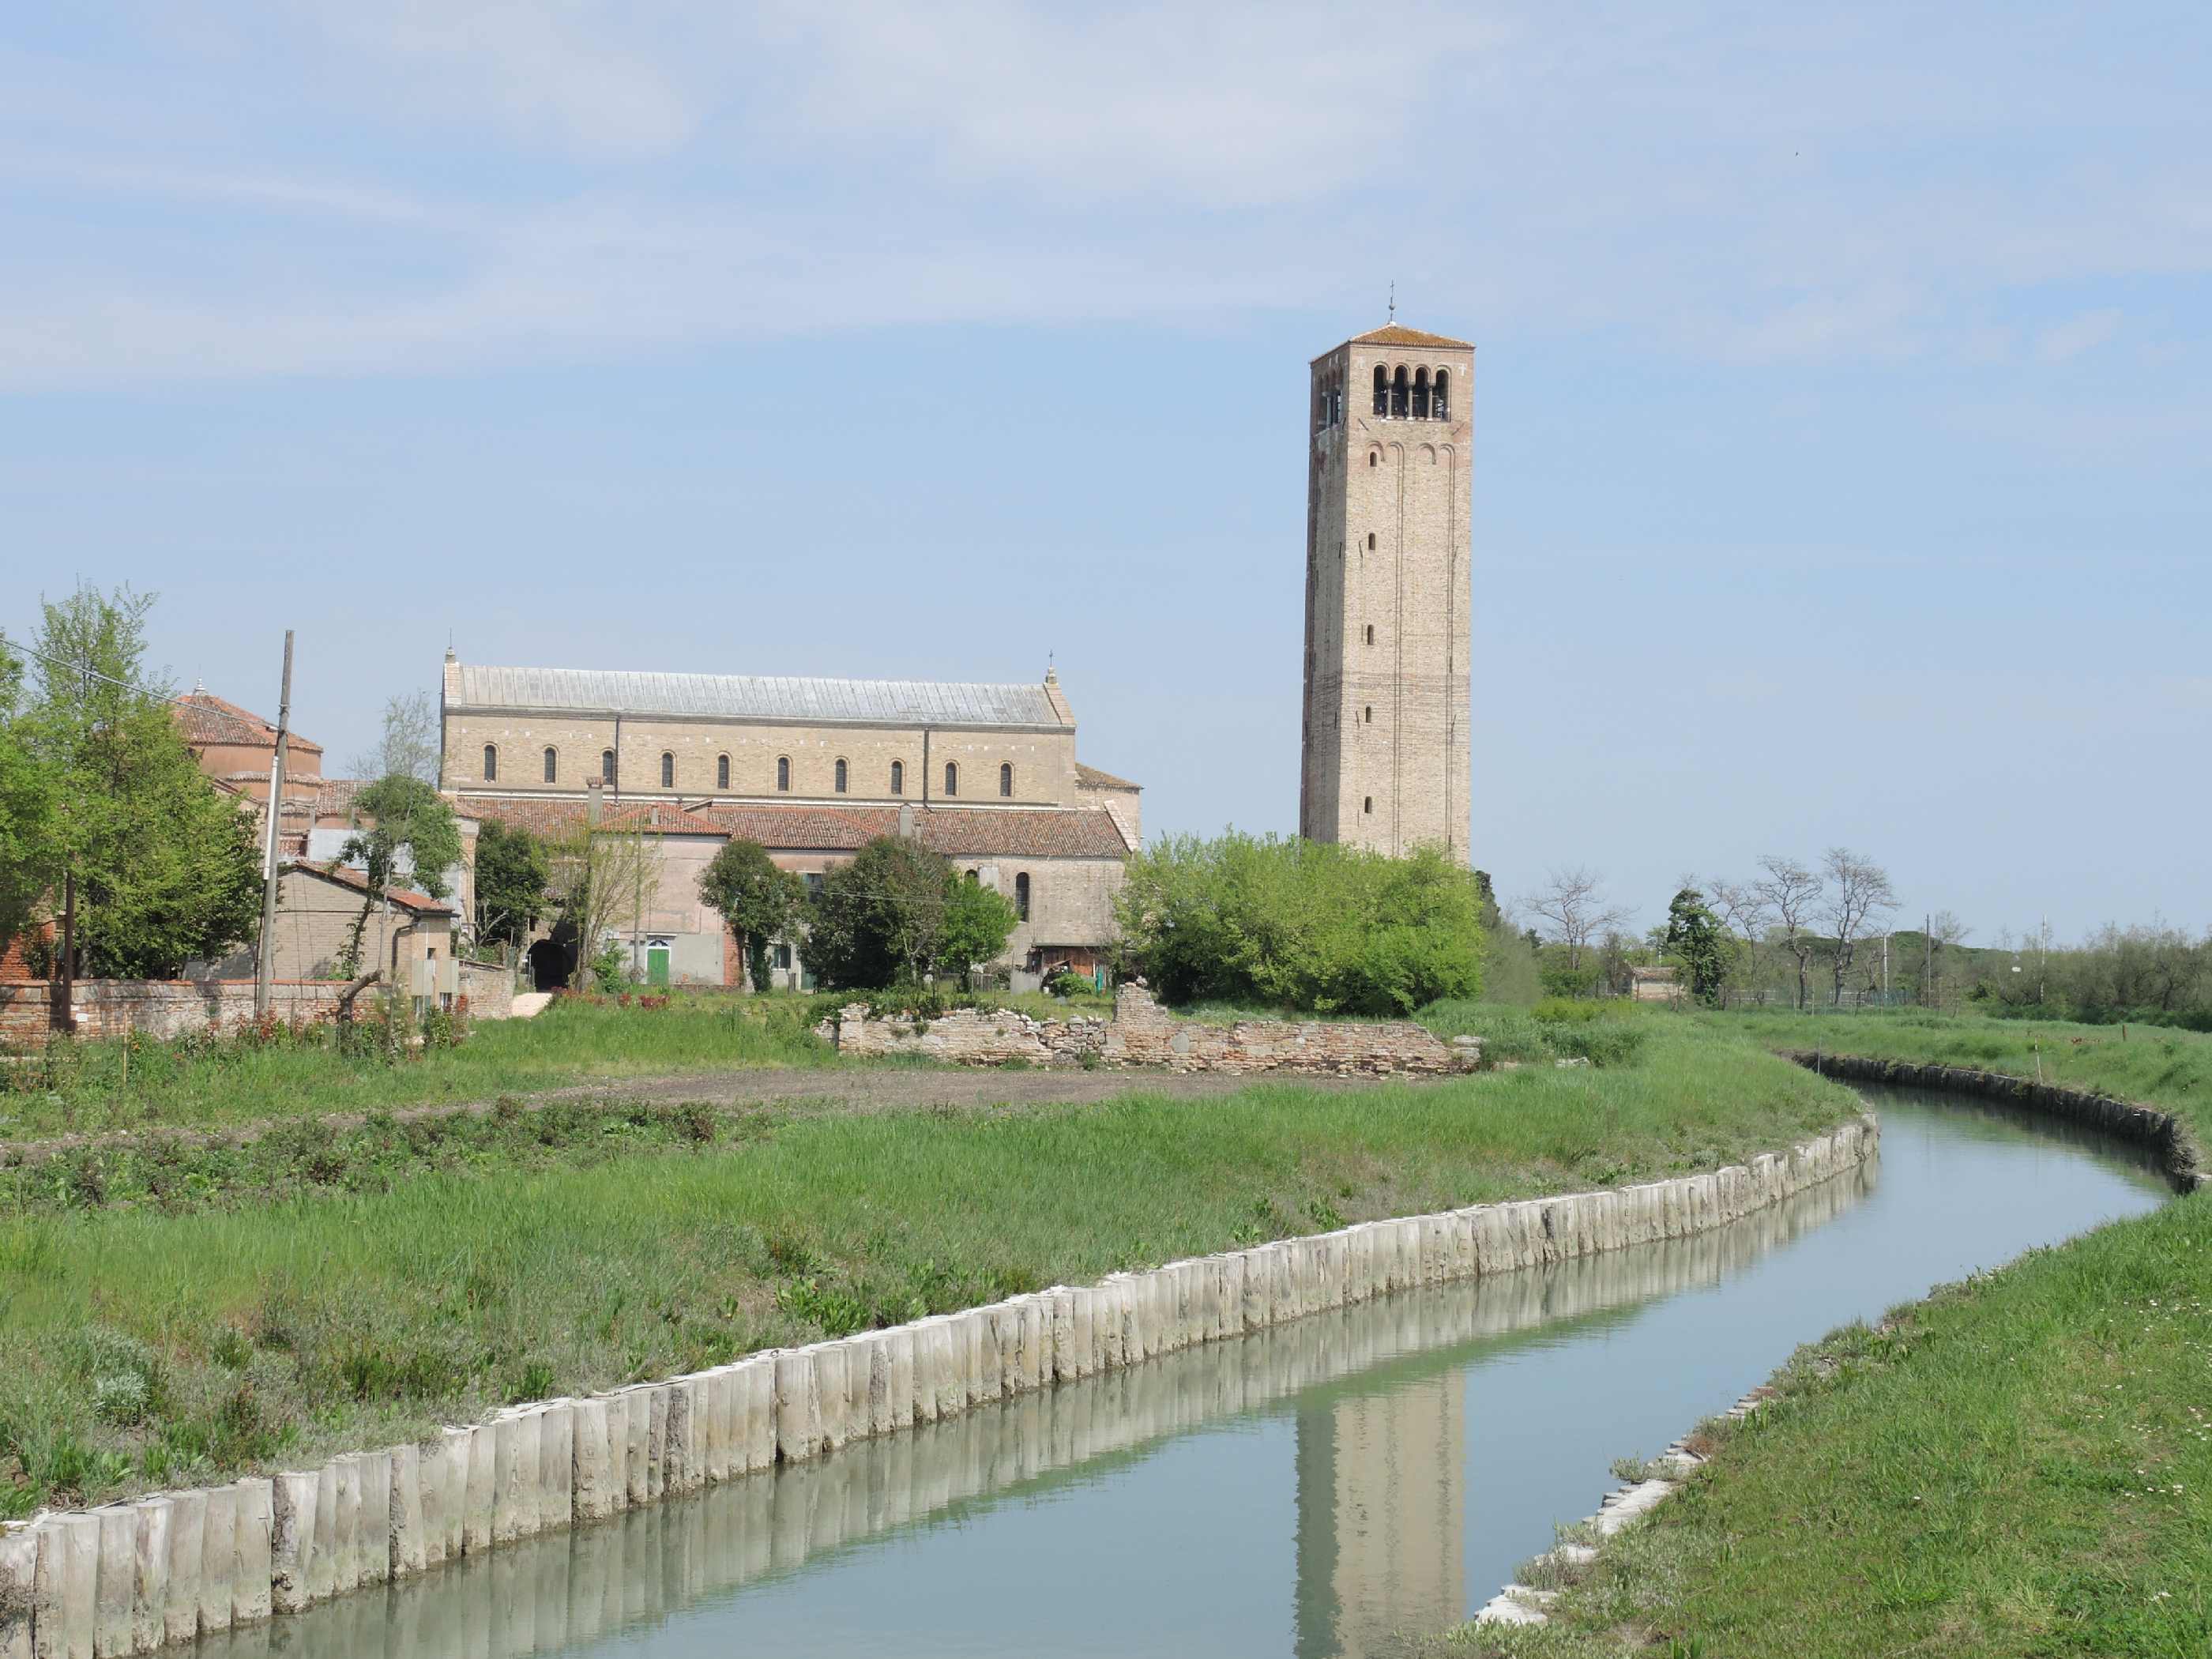 Torcello's Cathedral